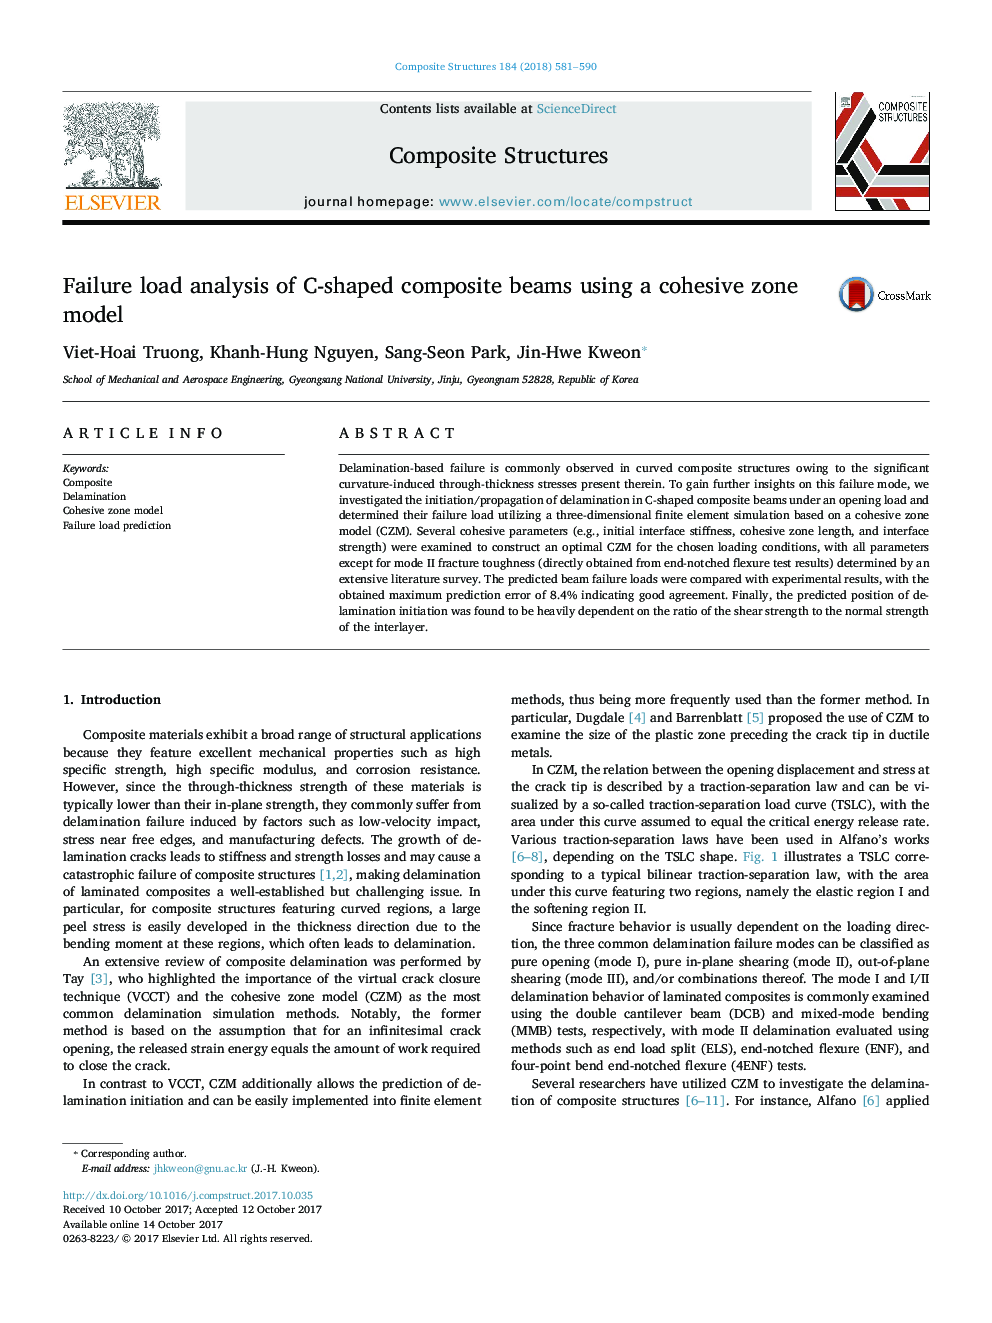 Failure load analysis of C-shaped composite beams using a cohesive zone model